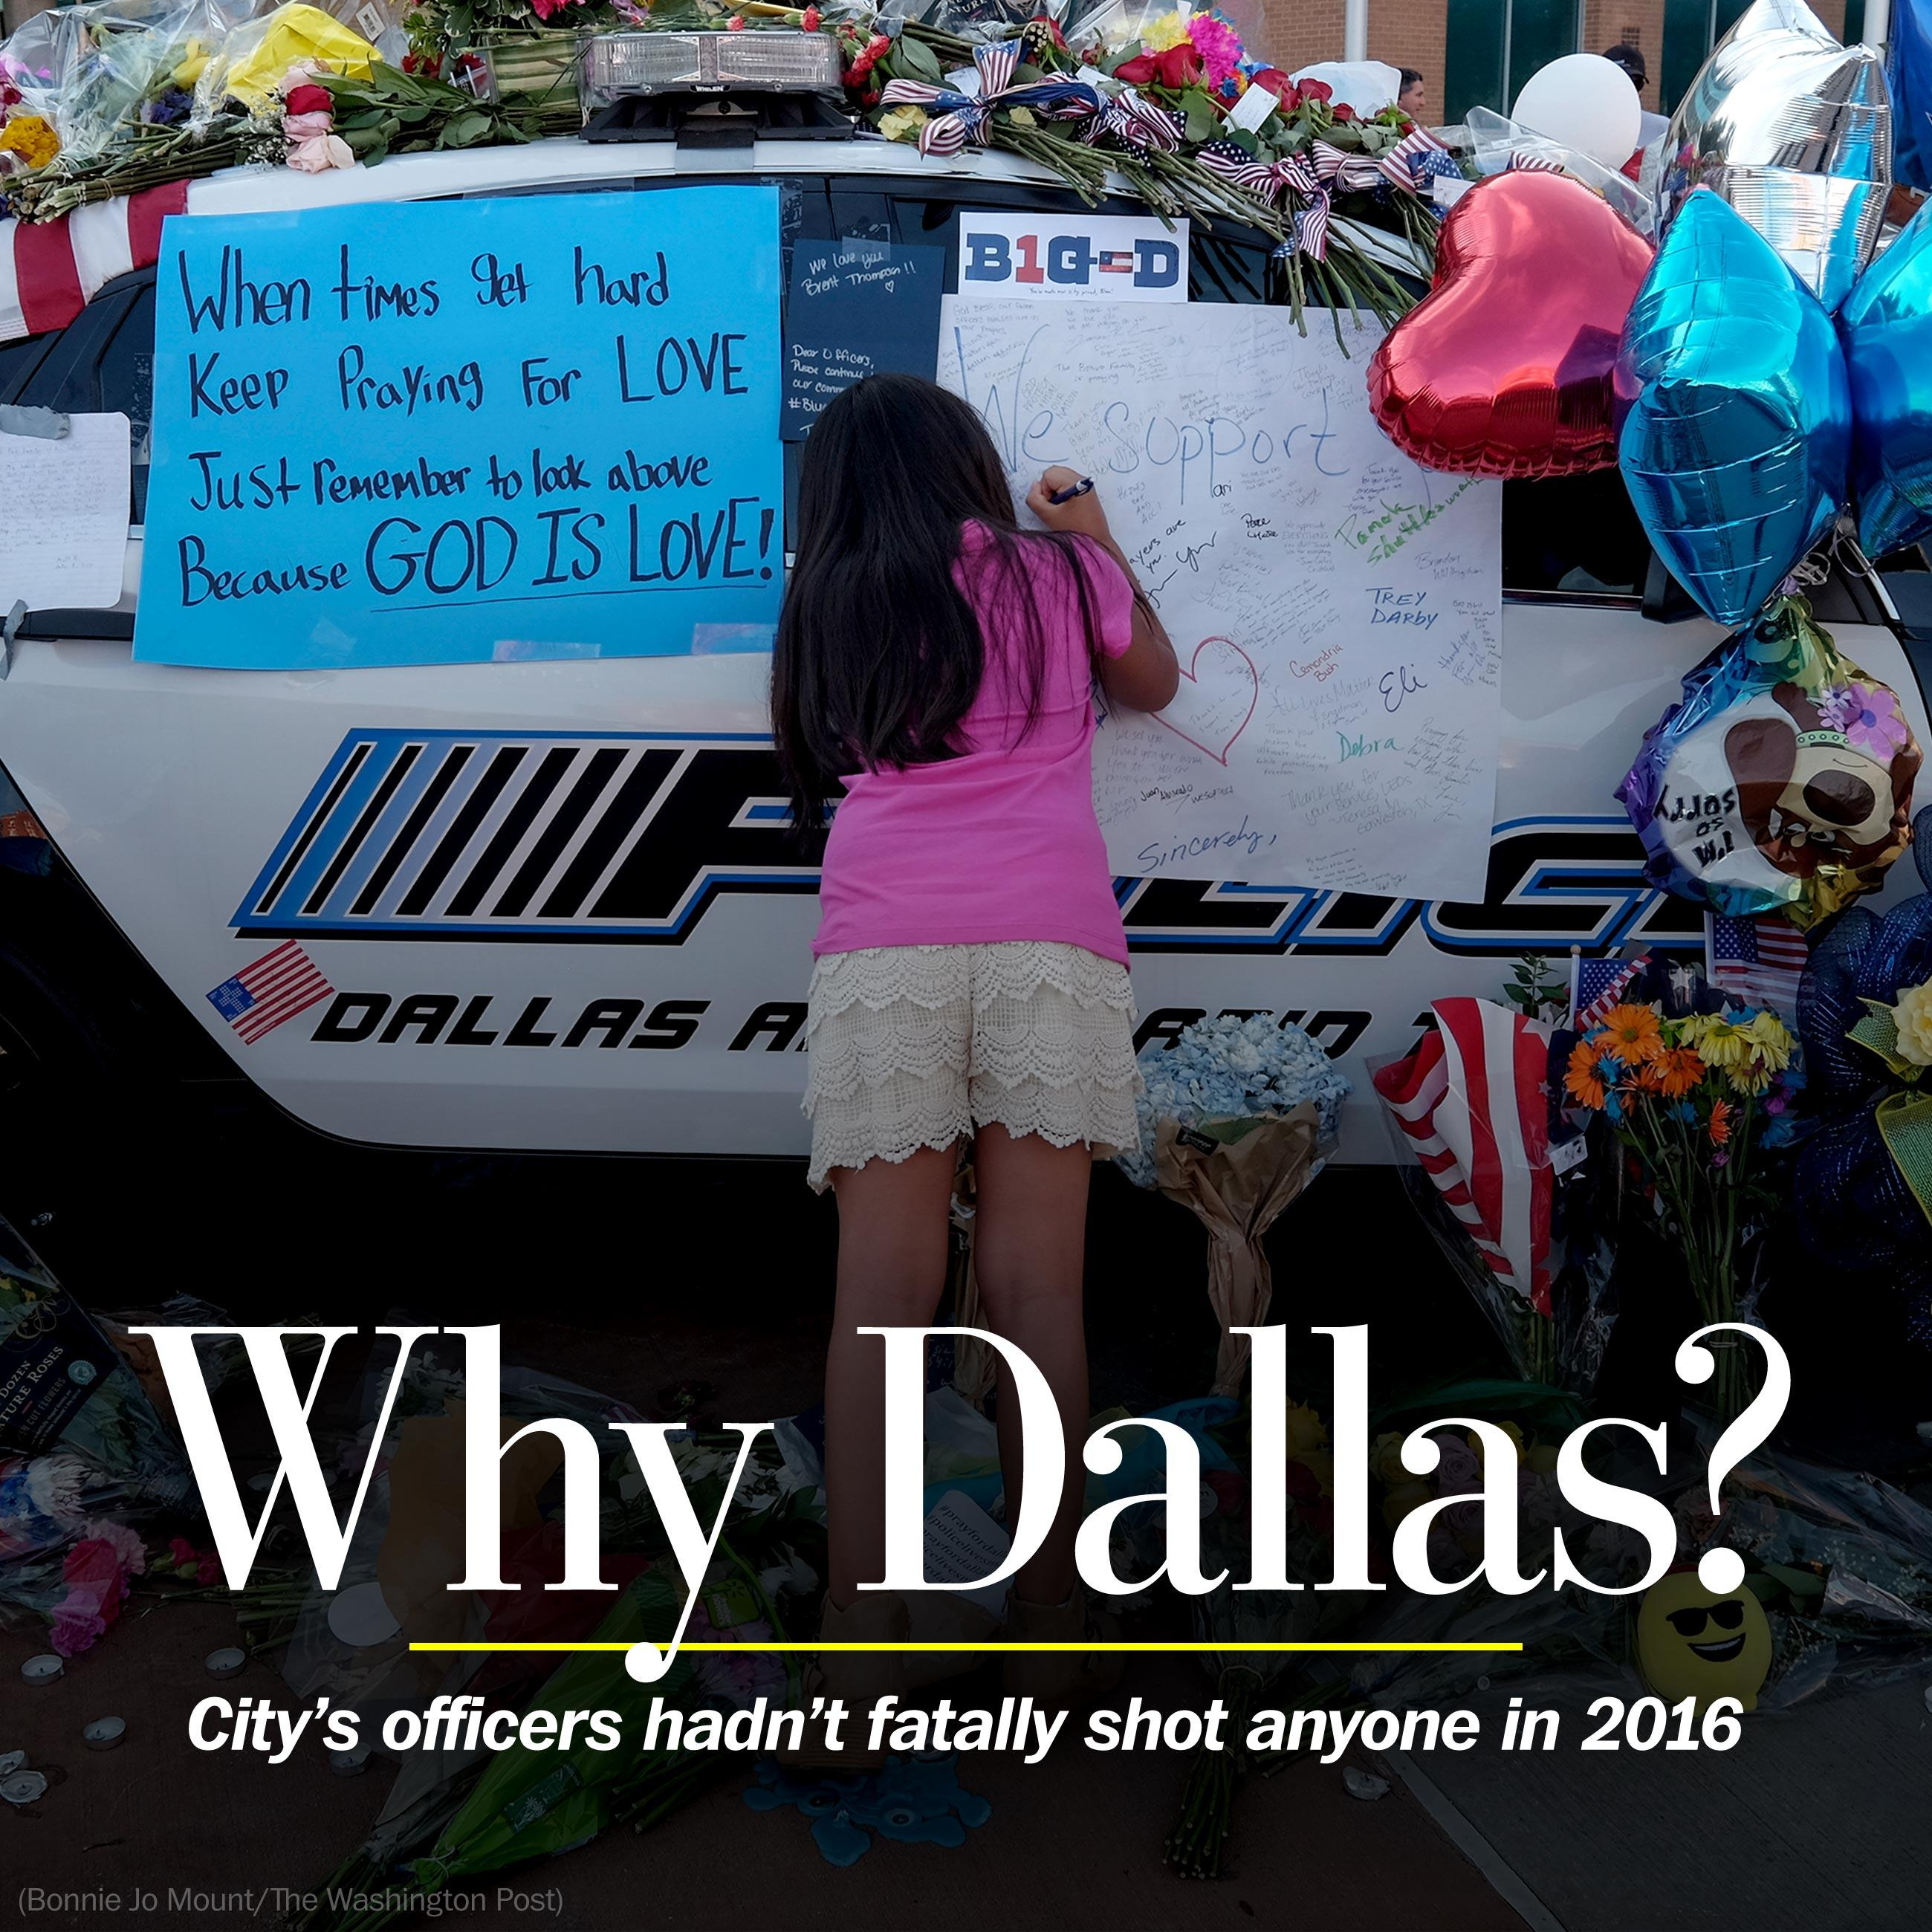 The question in Dallas: Why here?